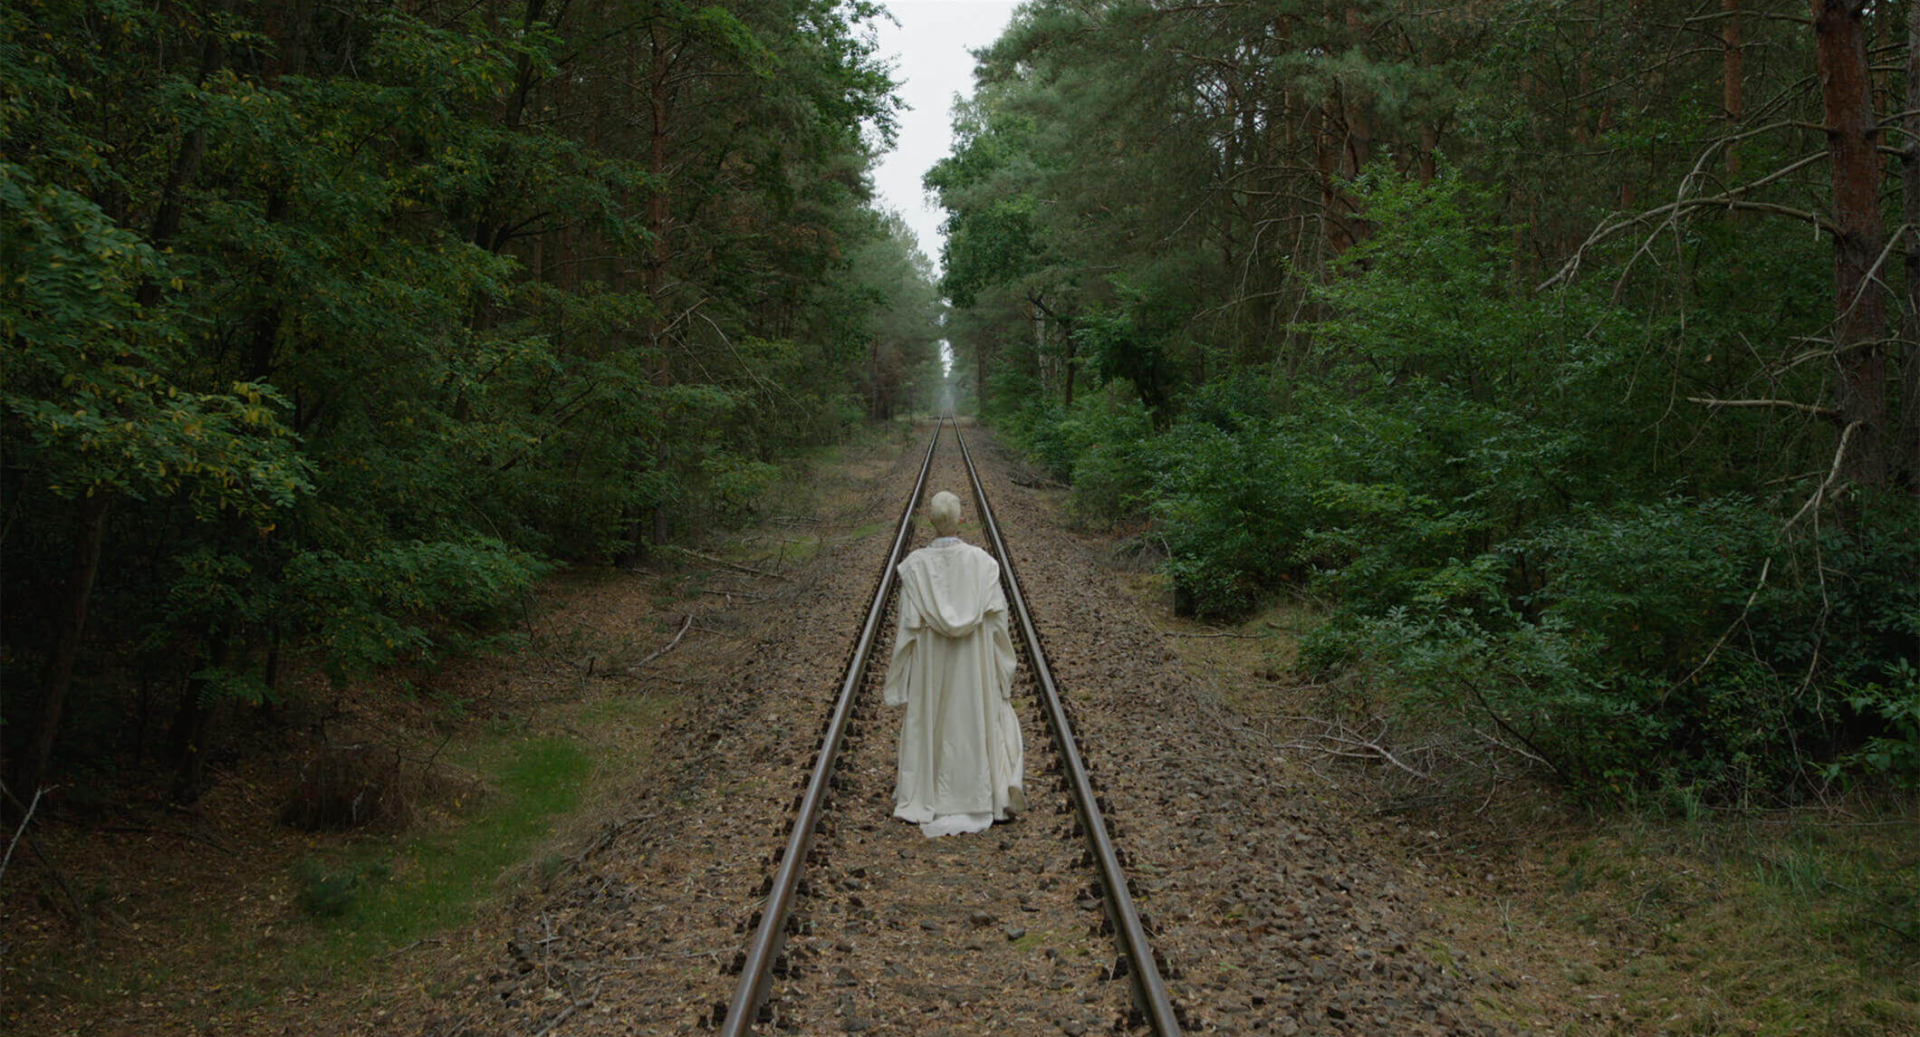 The film still shows a person from behind, dressed in a white frock. The person follows railroad tracks that run dead straight through a forest